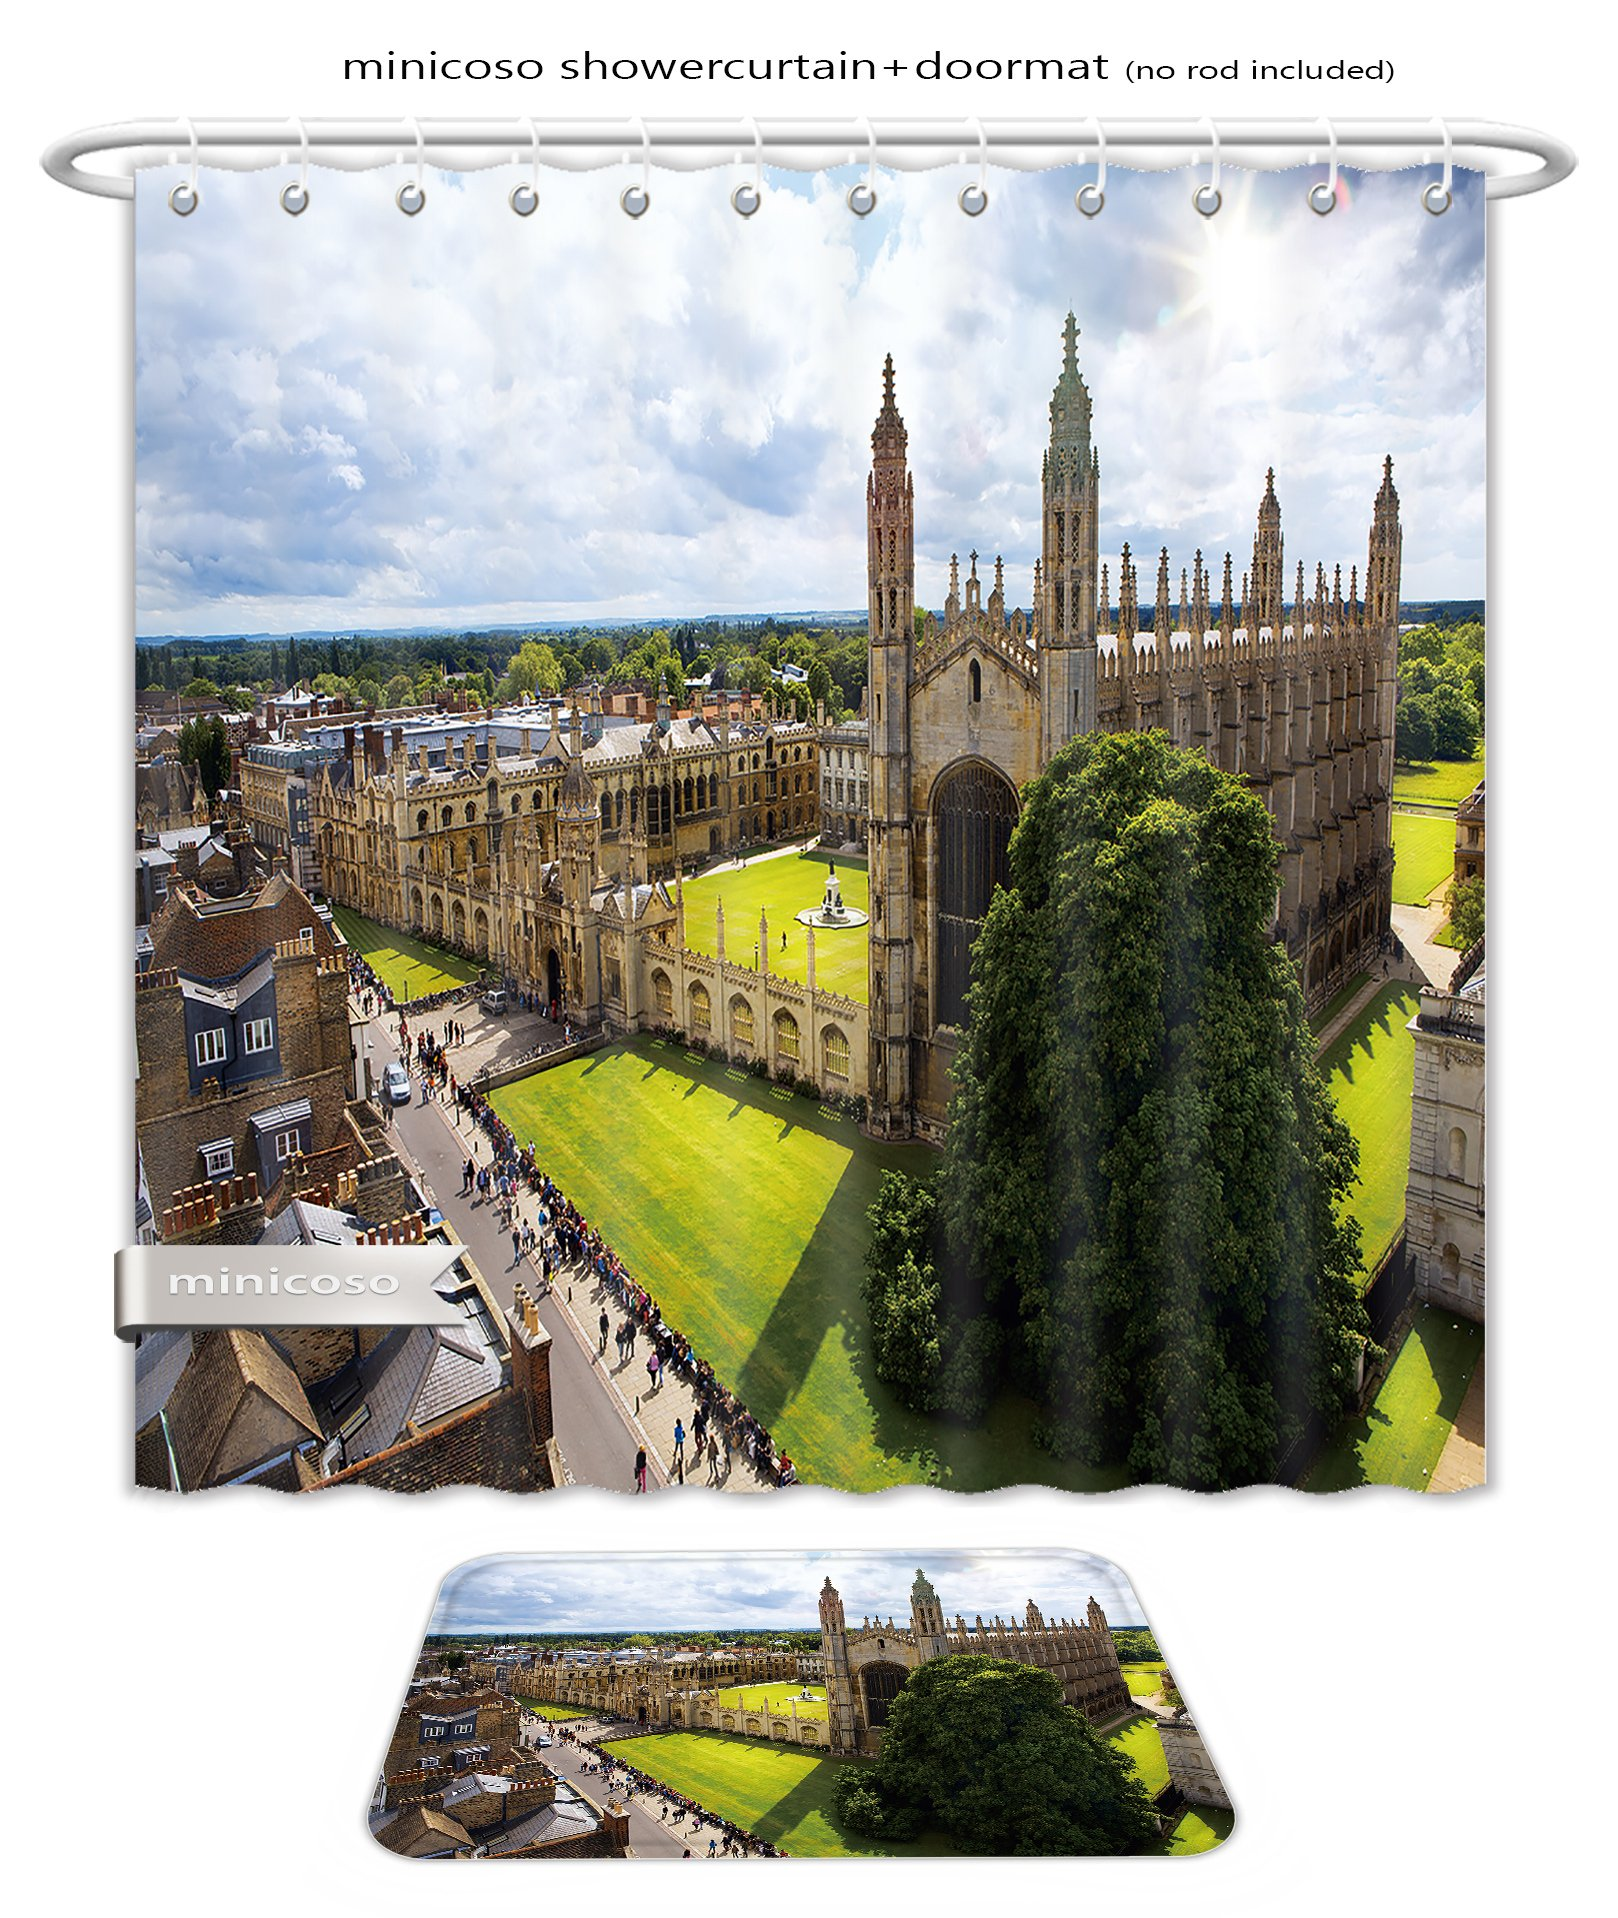 Minicoso Bath Two Piece Suit: Shower Curtains and Bath Rugs Cambridge University And Kings College Chapel Shower Curtain and Doormat Set